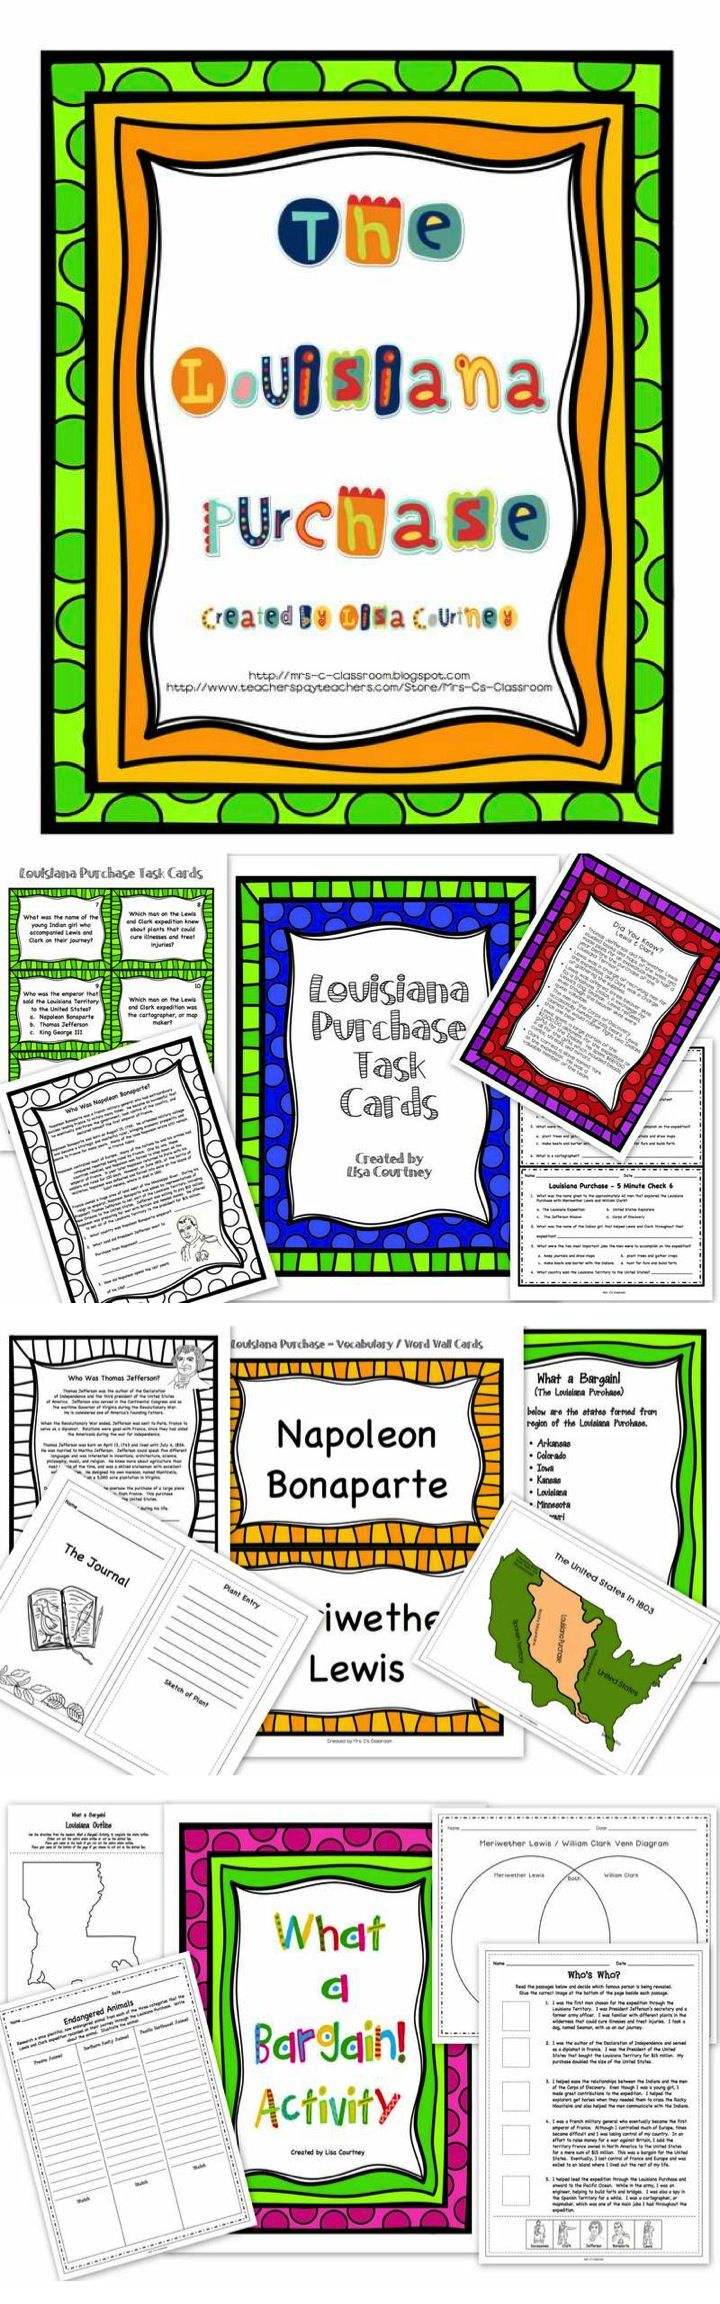 worksheet Louisiana Purchase Worksheet 1000 ideas about louisiana purchase on pinterest history lewis clark this 89 page unit contains everything you need to